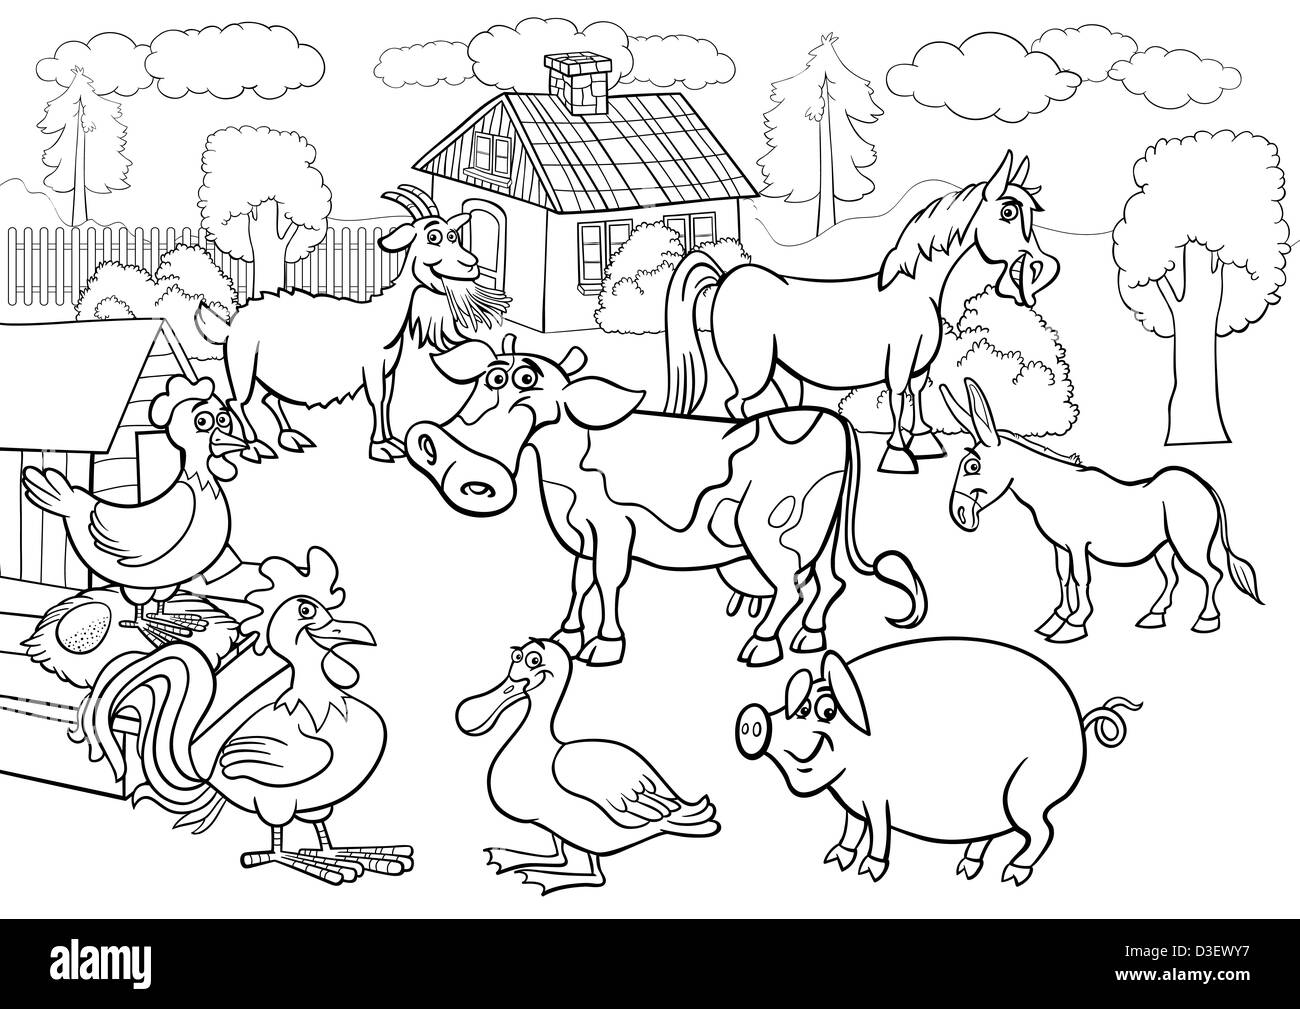 Black And White Cartoon Illustration Of Rural Scene With